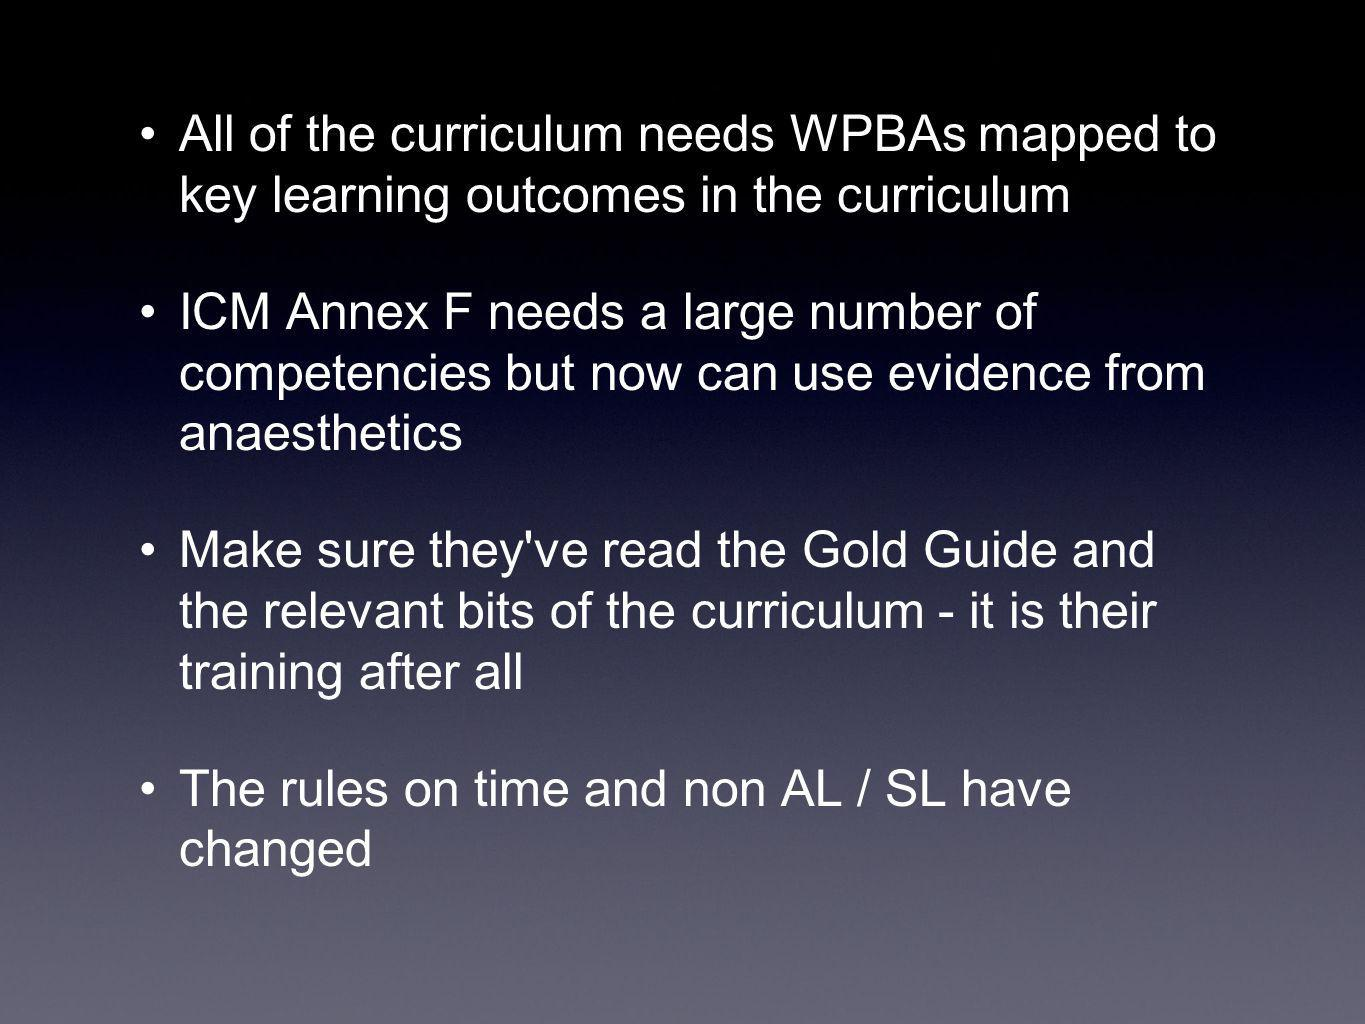 All of the curriculum needs WPBAs mapped to key learning outcomes in the curriculum ICM Annex F needs a large number of competencies but now can use evidence from anaesthetics Make sure they ve read the Gold Guide and the relevant bits of the curriculum - it is their training after all The rules on time and non AL / SL have changed